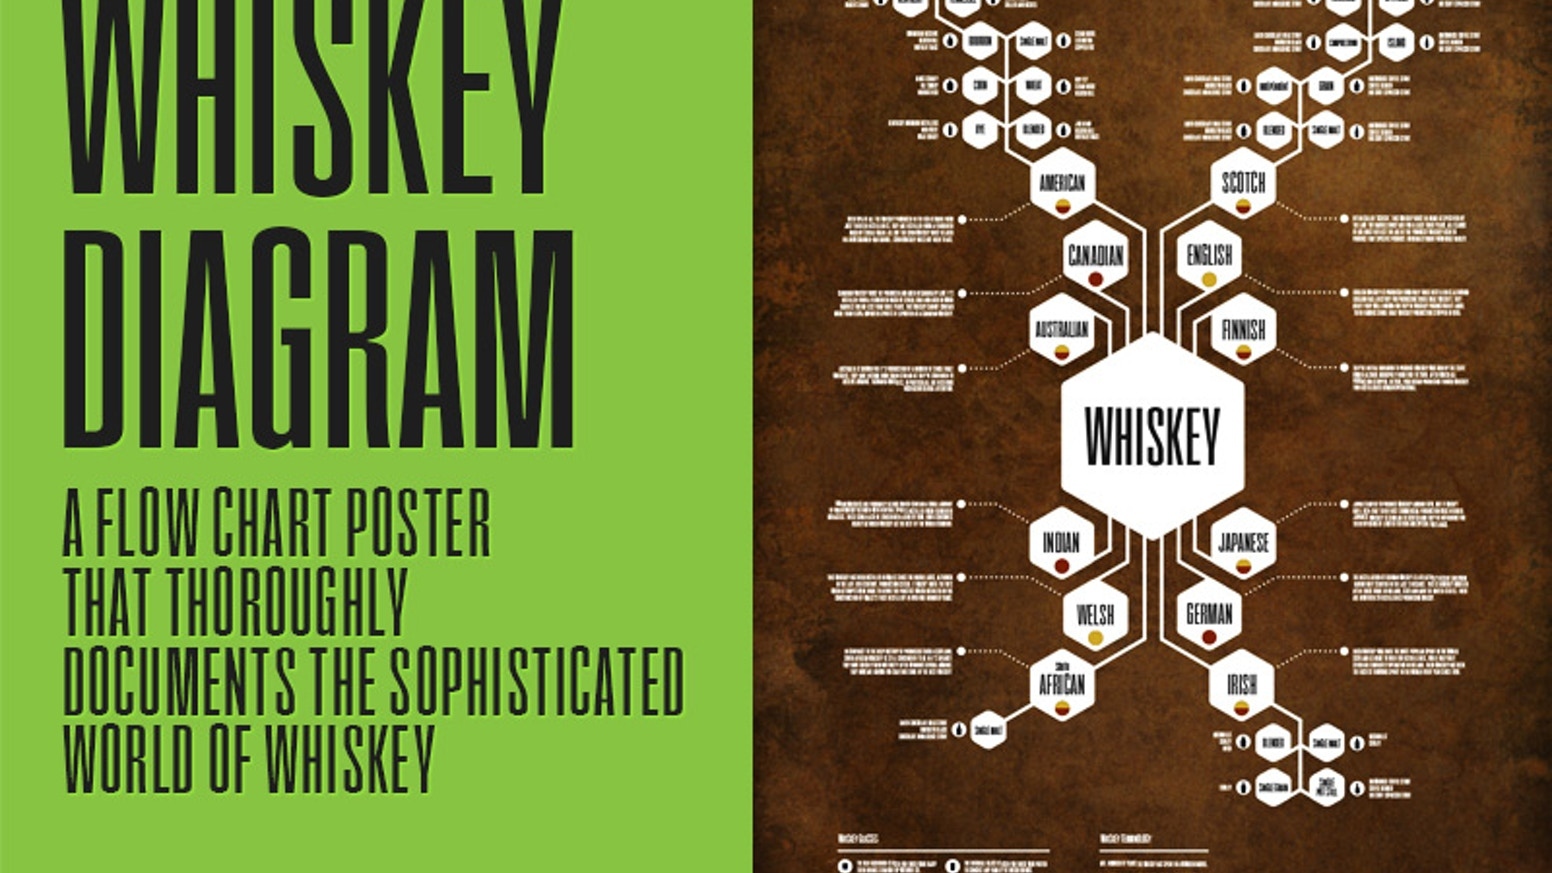 Flow chart poster that thoroughly documents the sophisticated world of whiskey.